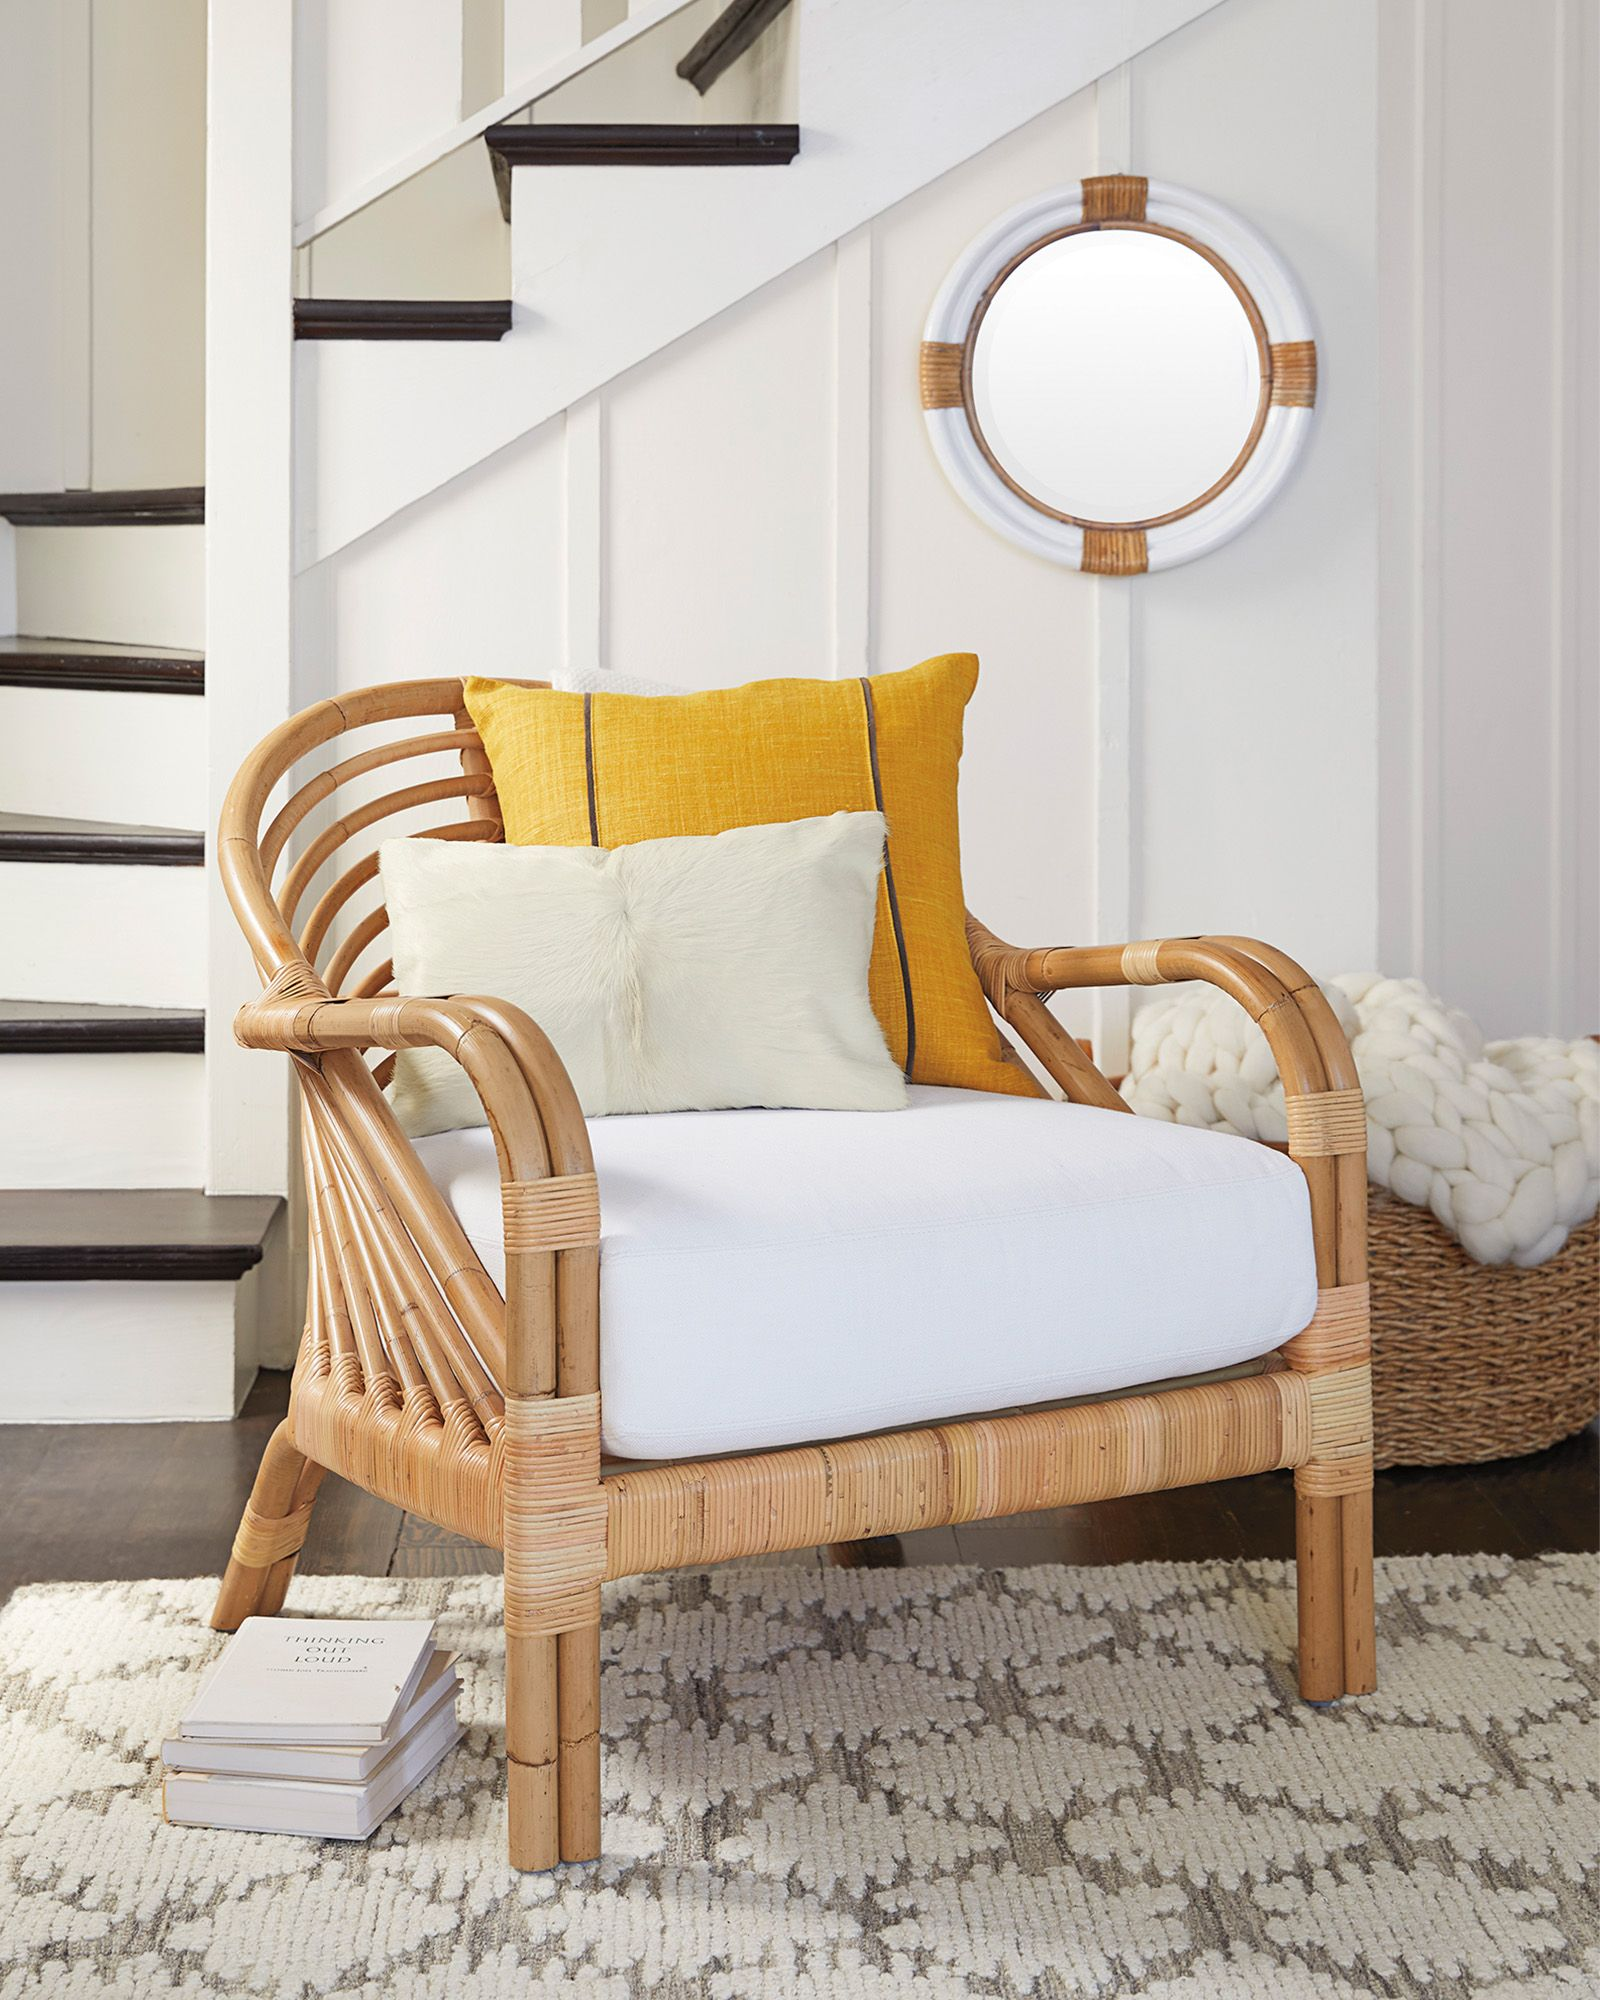 Edgewater Lounge Chair in 2020 Chair, Home and living